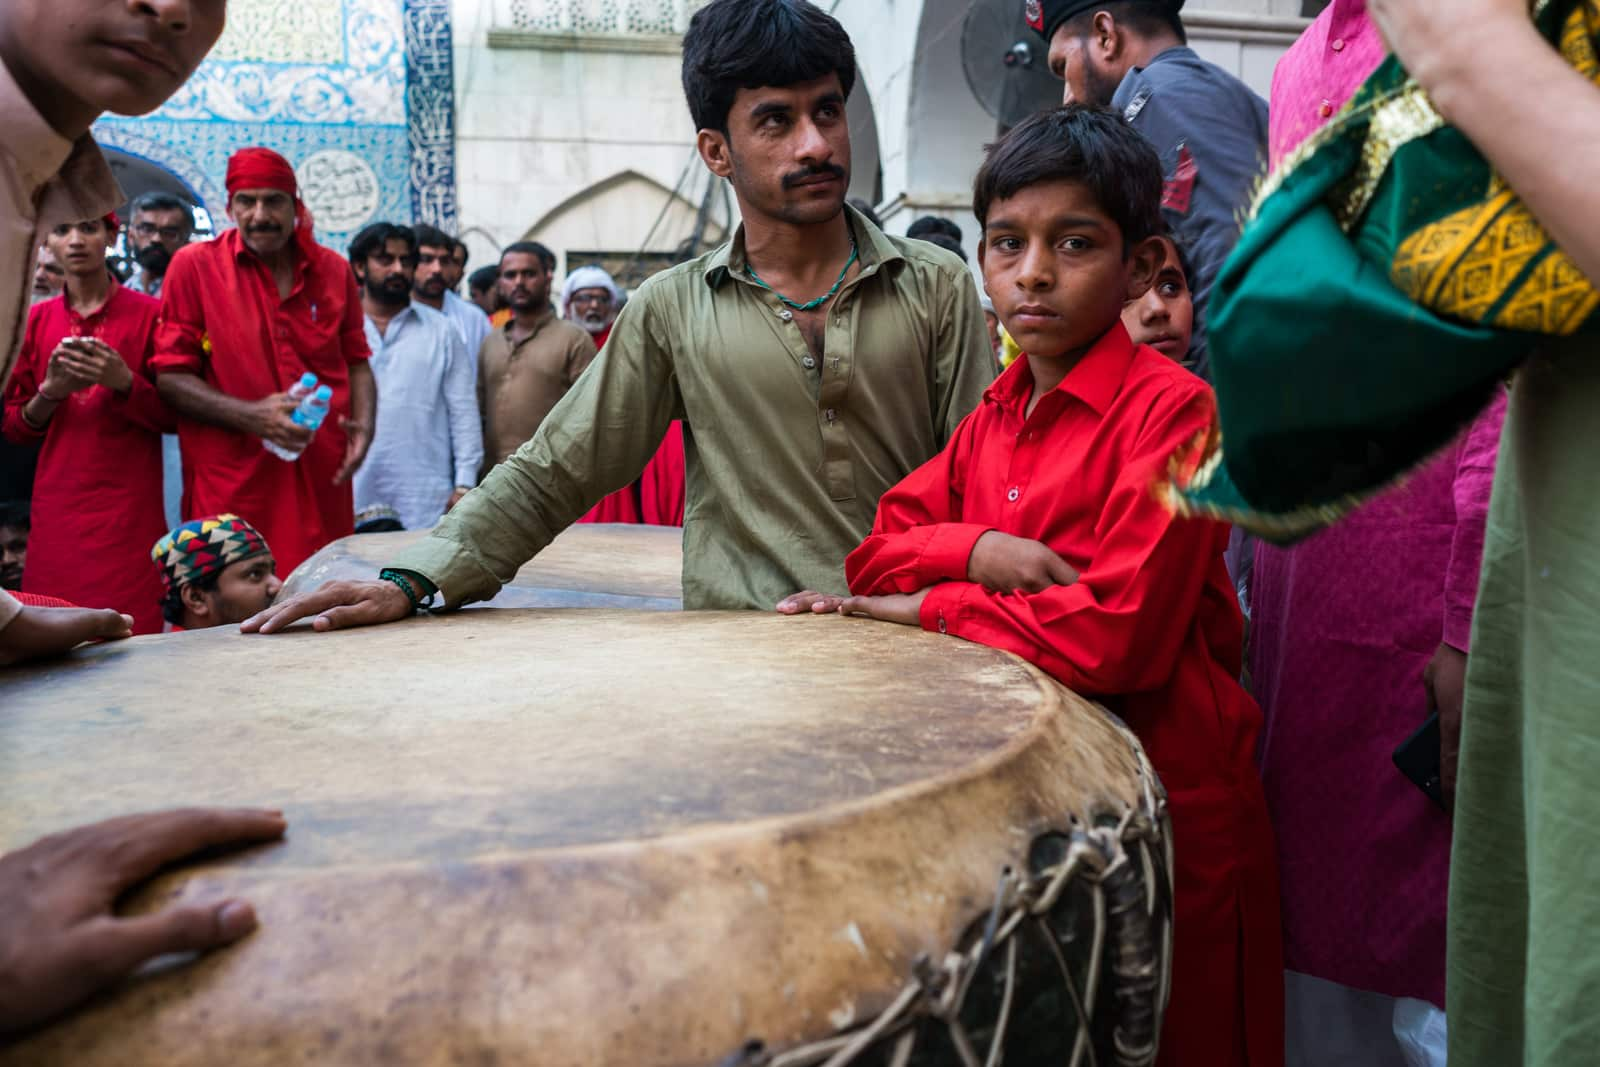 The Urs of Lal Shahbaz Qalandar in Sehwan, Pakistan - Dhamaal drum inside the shrine - Lost With Purpose travel blog